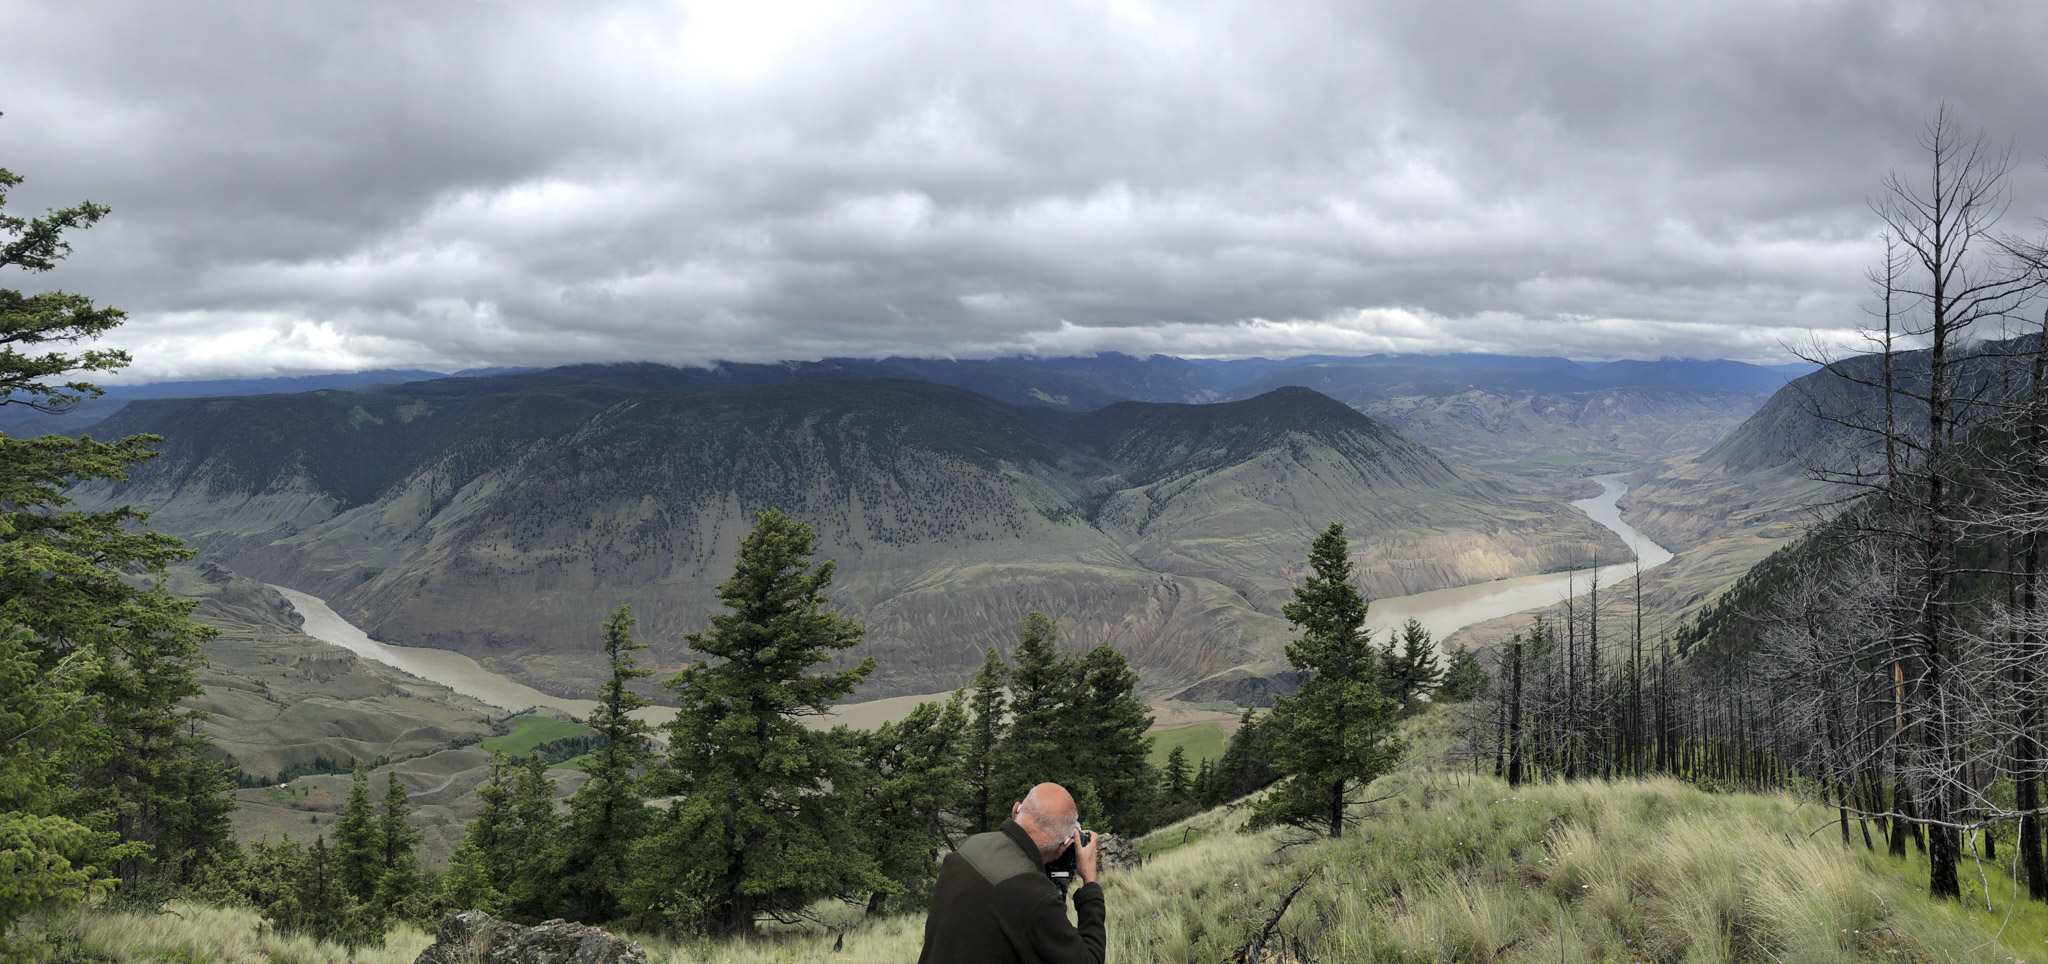 Cougar Point Pano with Photographer - Derek Chambers IMG_3472